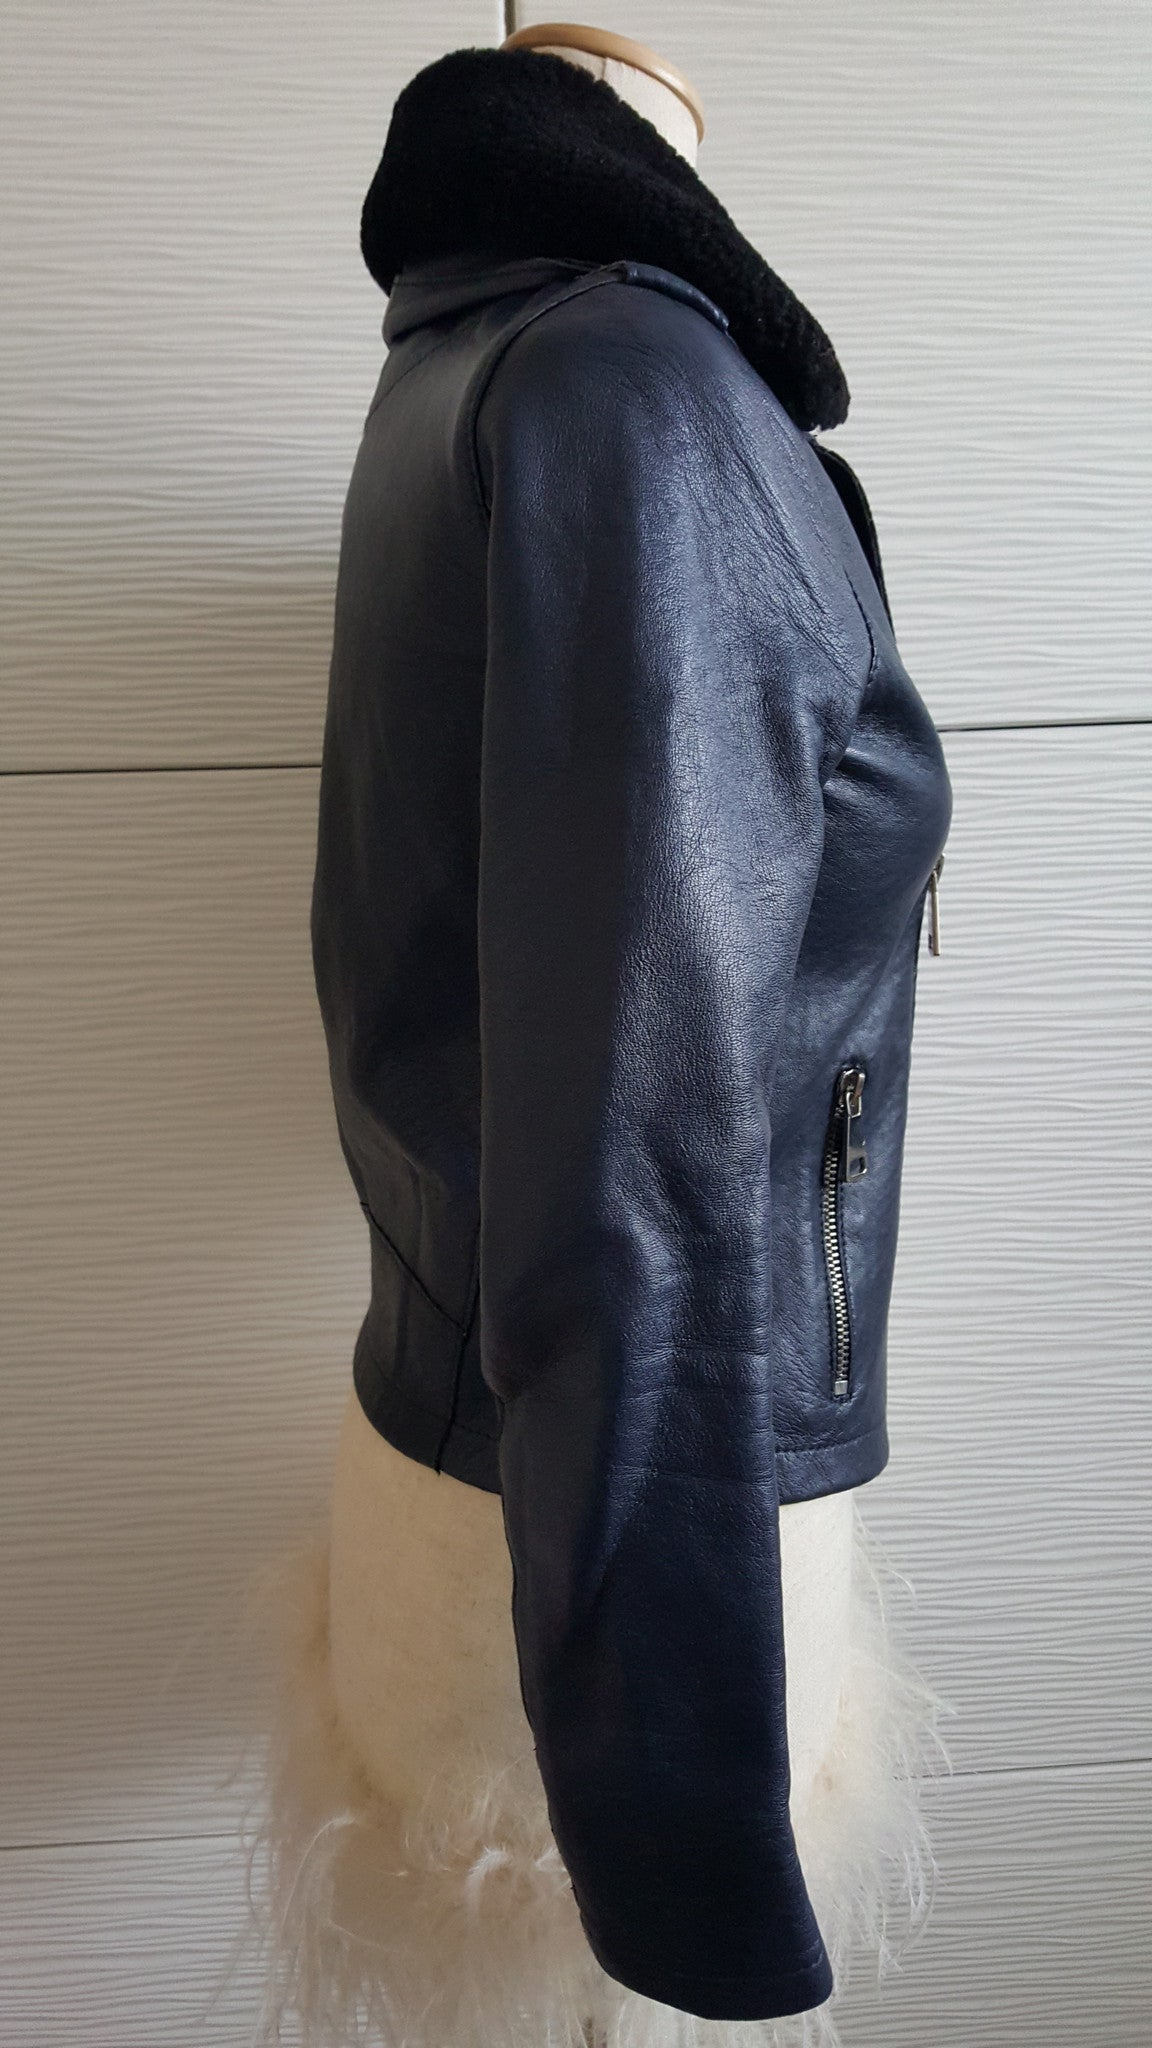 MAJE SHEARLING TRIMMED LEATHER BIKER JACKET - NAVY BLUE - SIZE 36